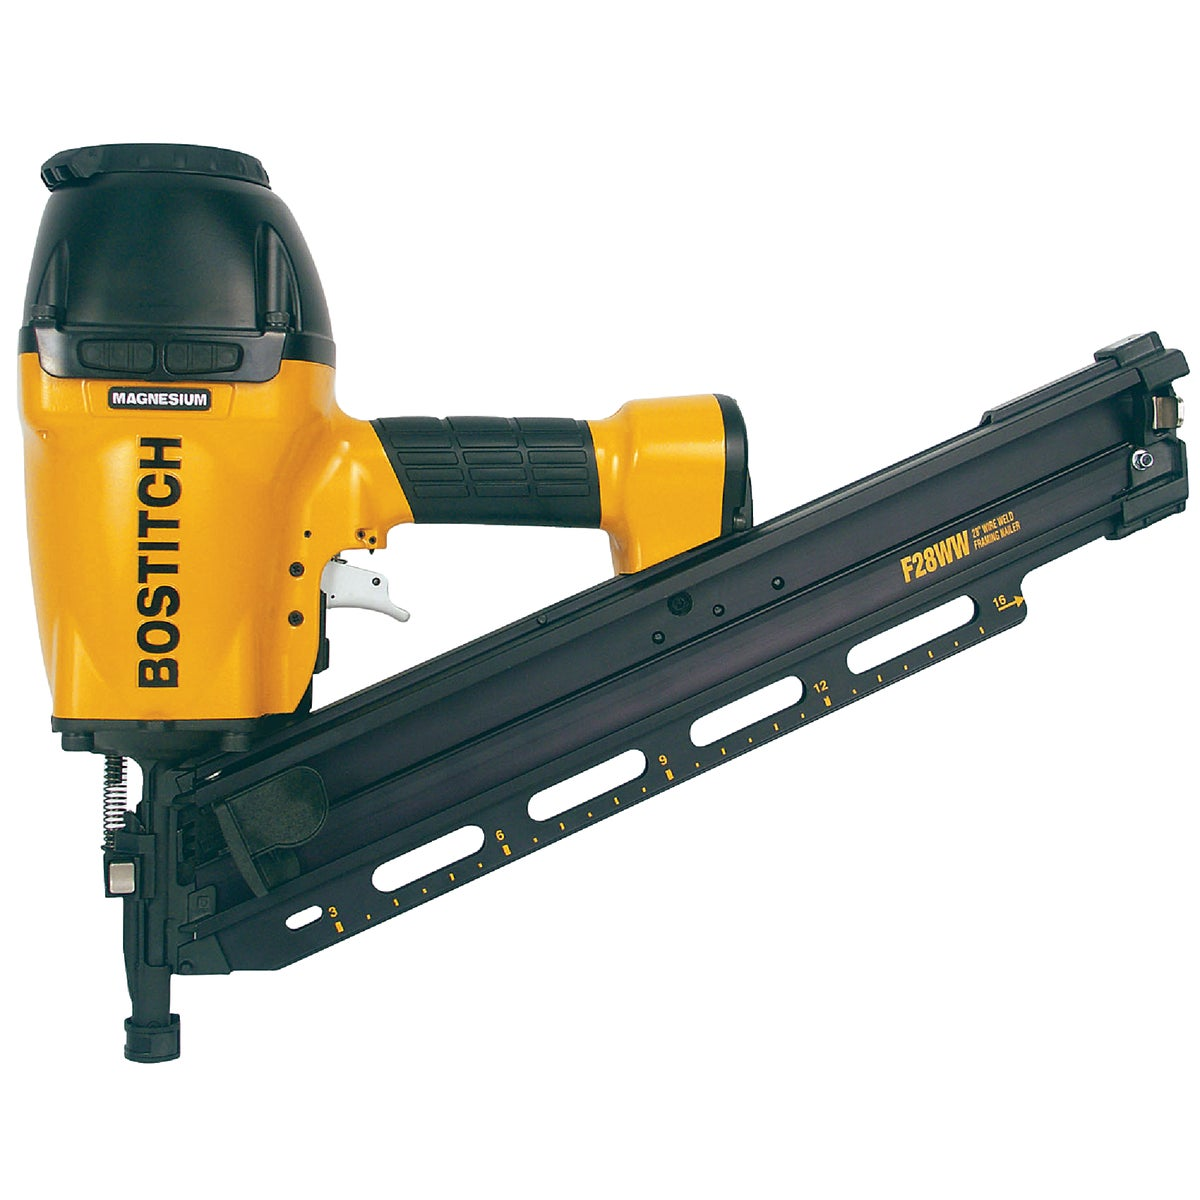 STICK FRAMING NAILER - F28WW by Stanley Bostitch